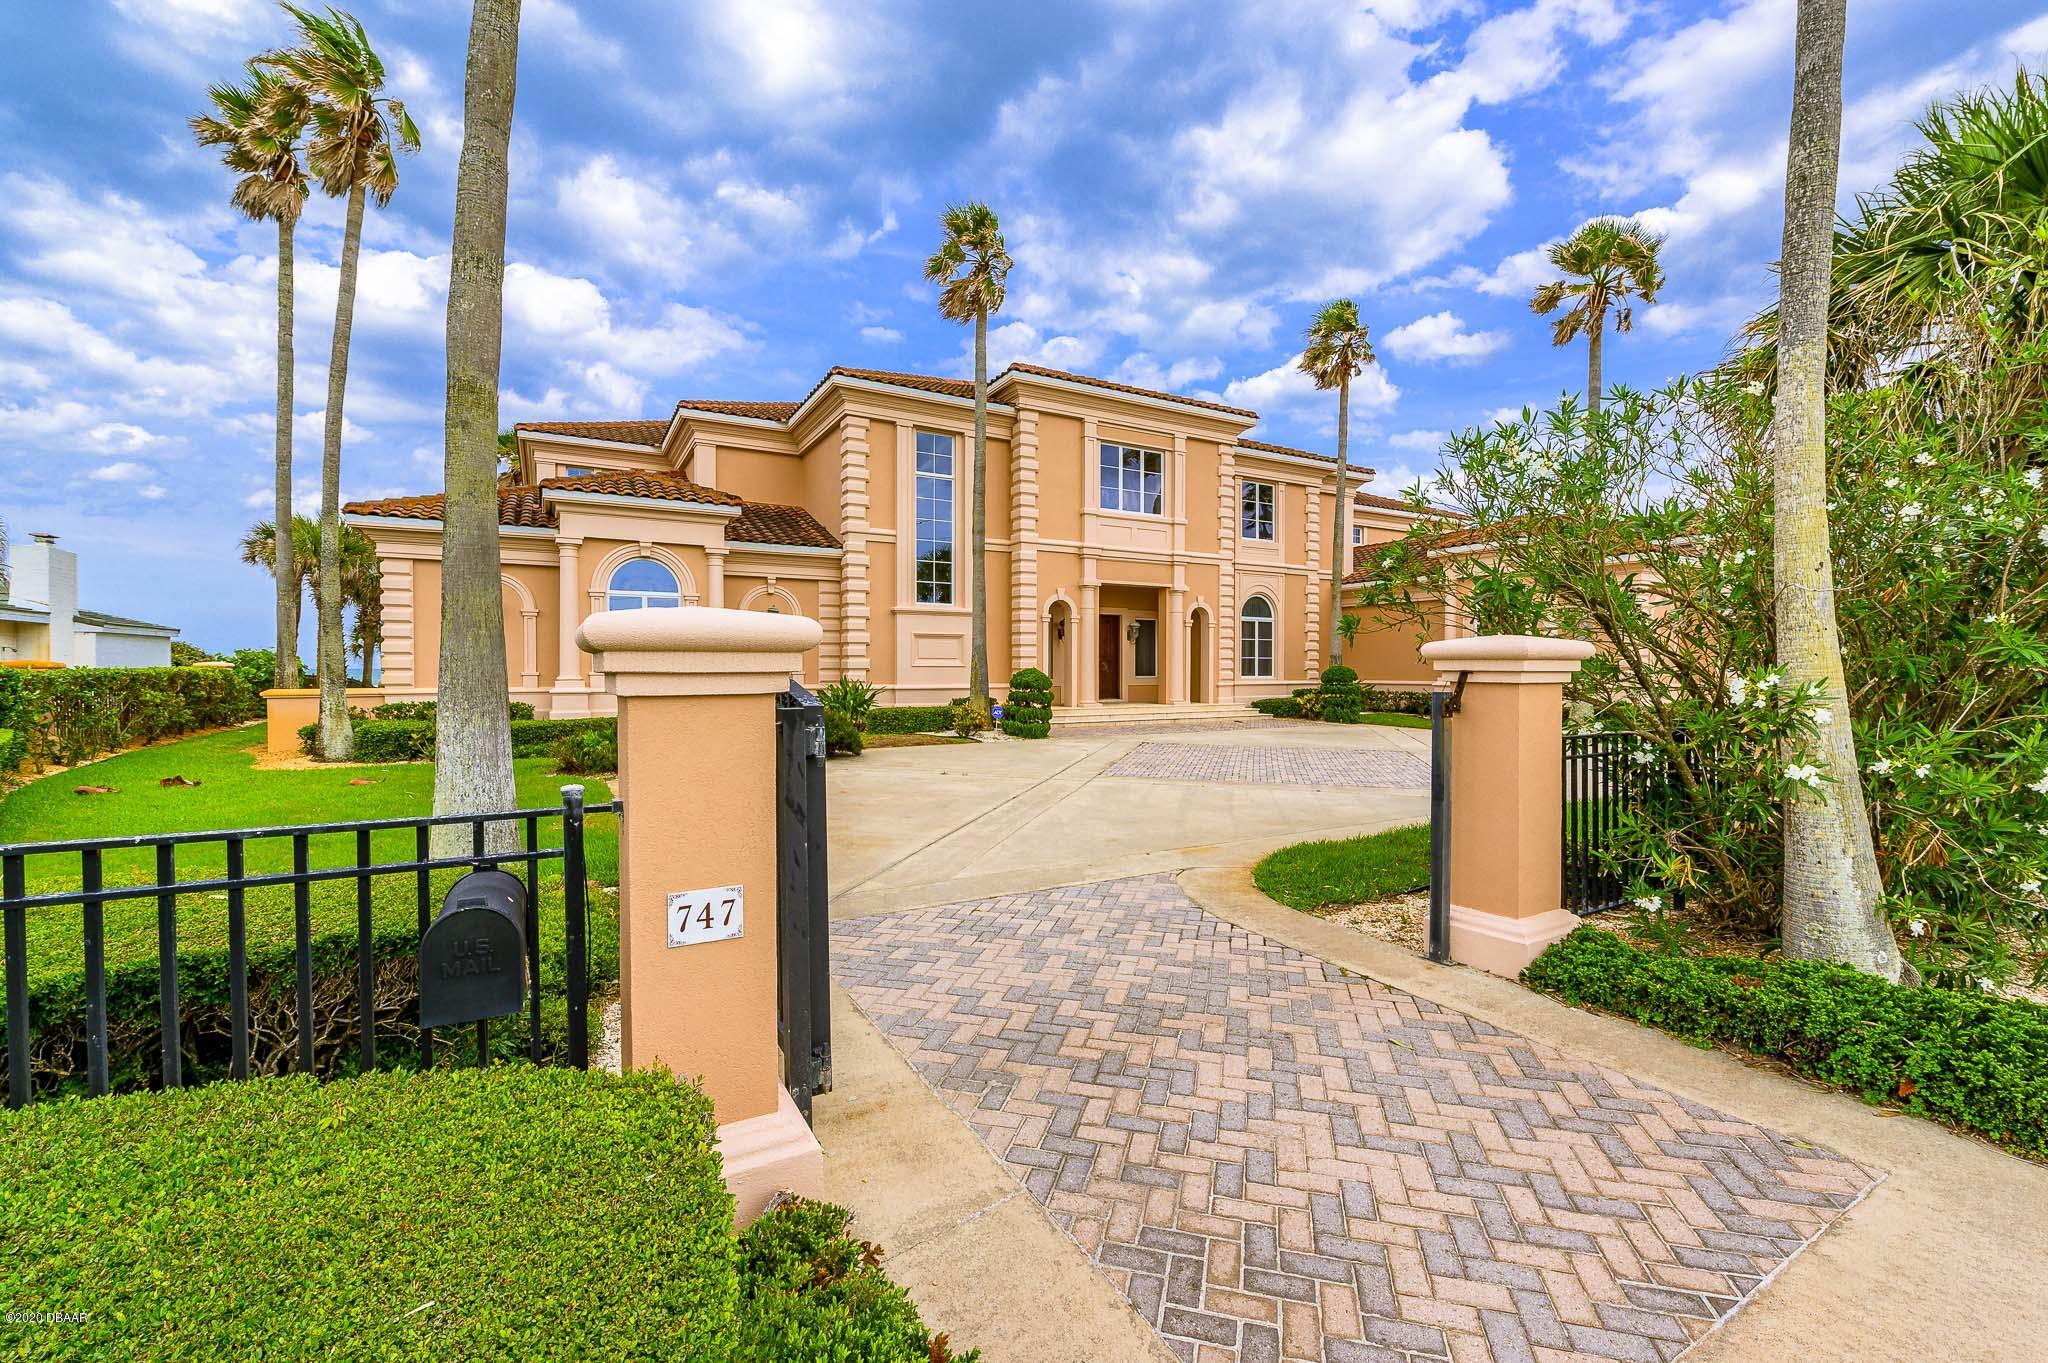 Photo of 747 Ocean Shore Boulevard, Ormond Beach, FL 32176